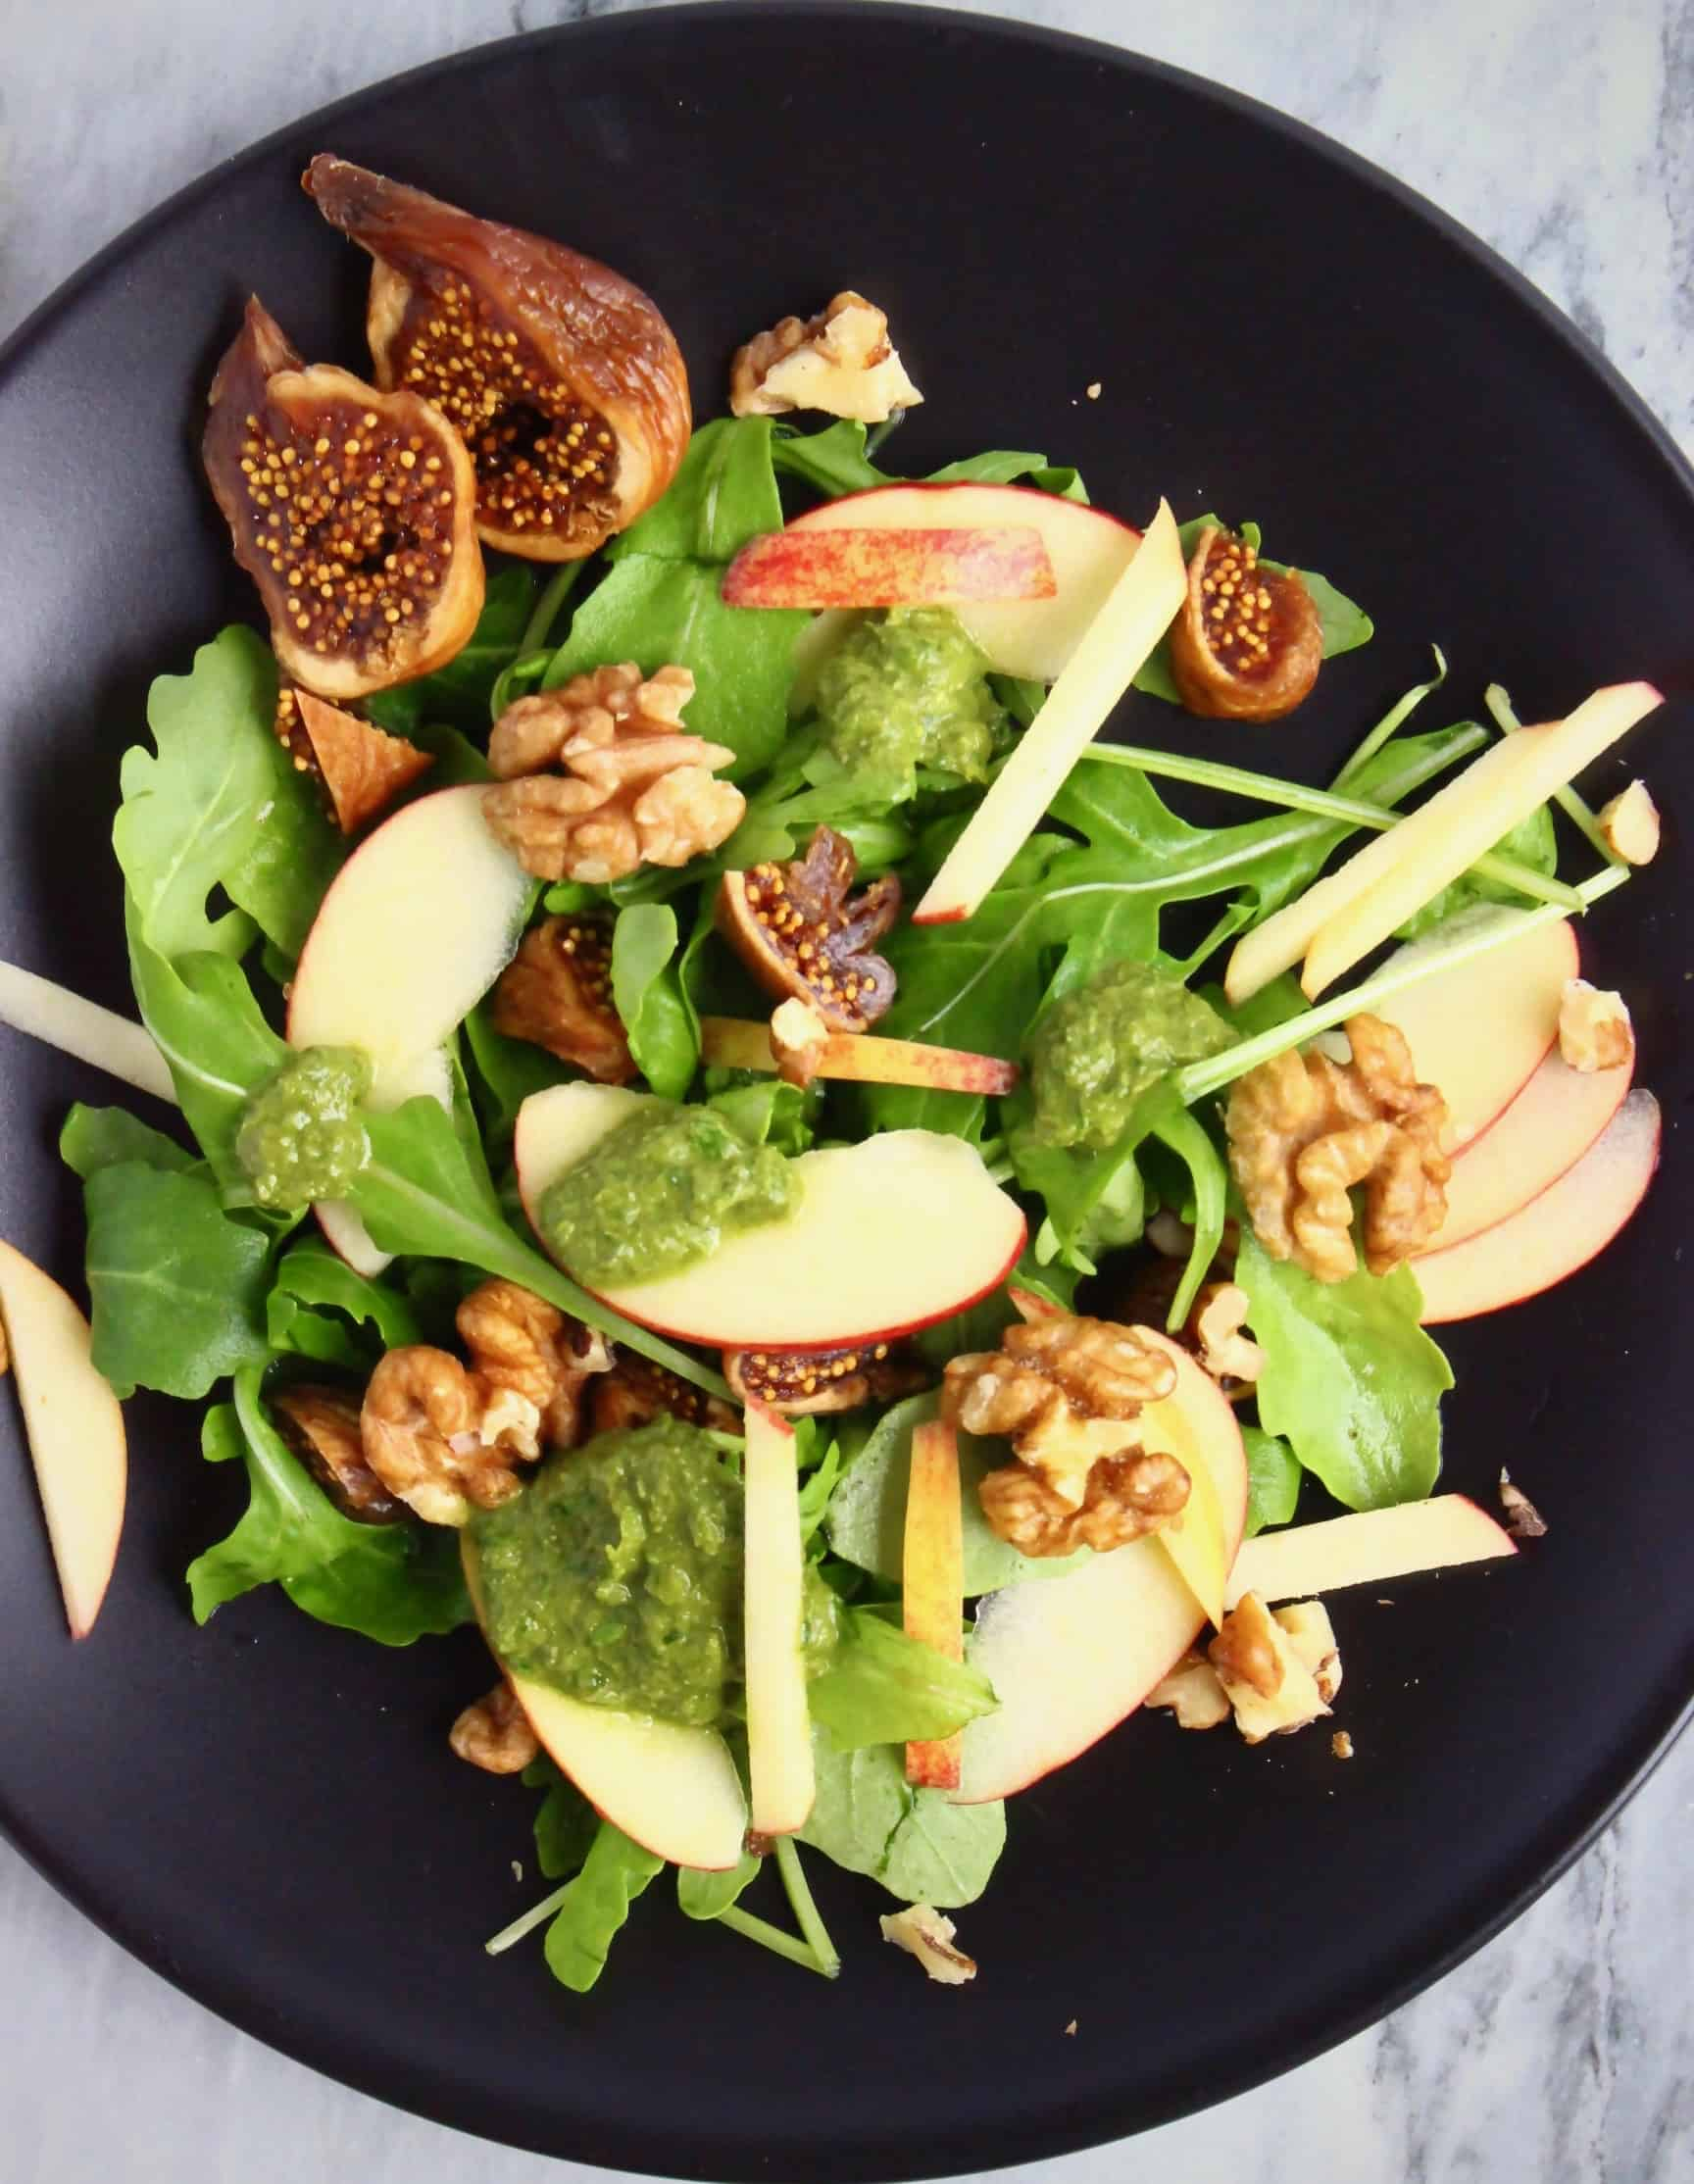 Apple slices, chopped dried figs, rocket and walnuts covered in a green pesto dressing on a black plate against a marble background